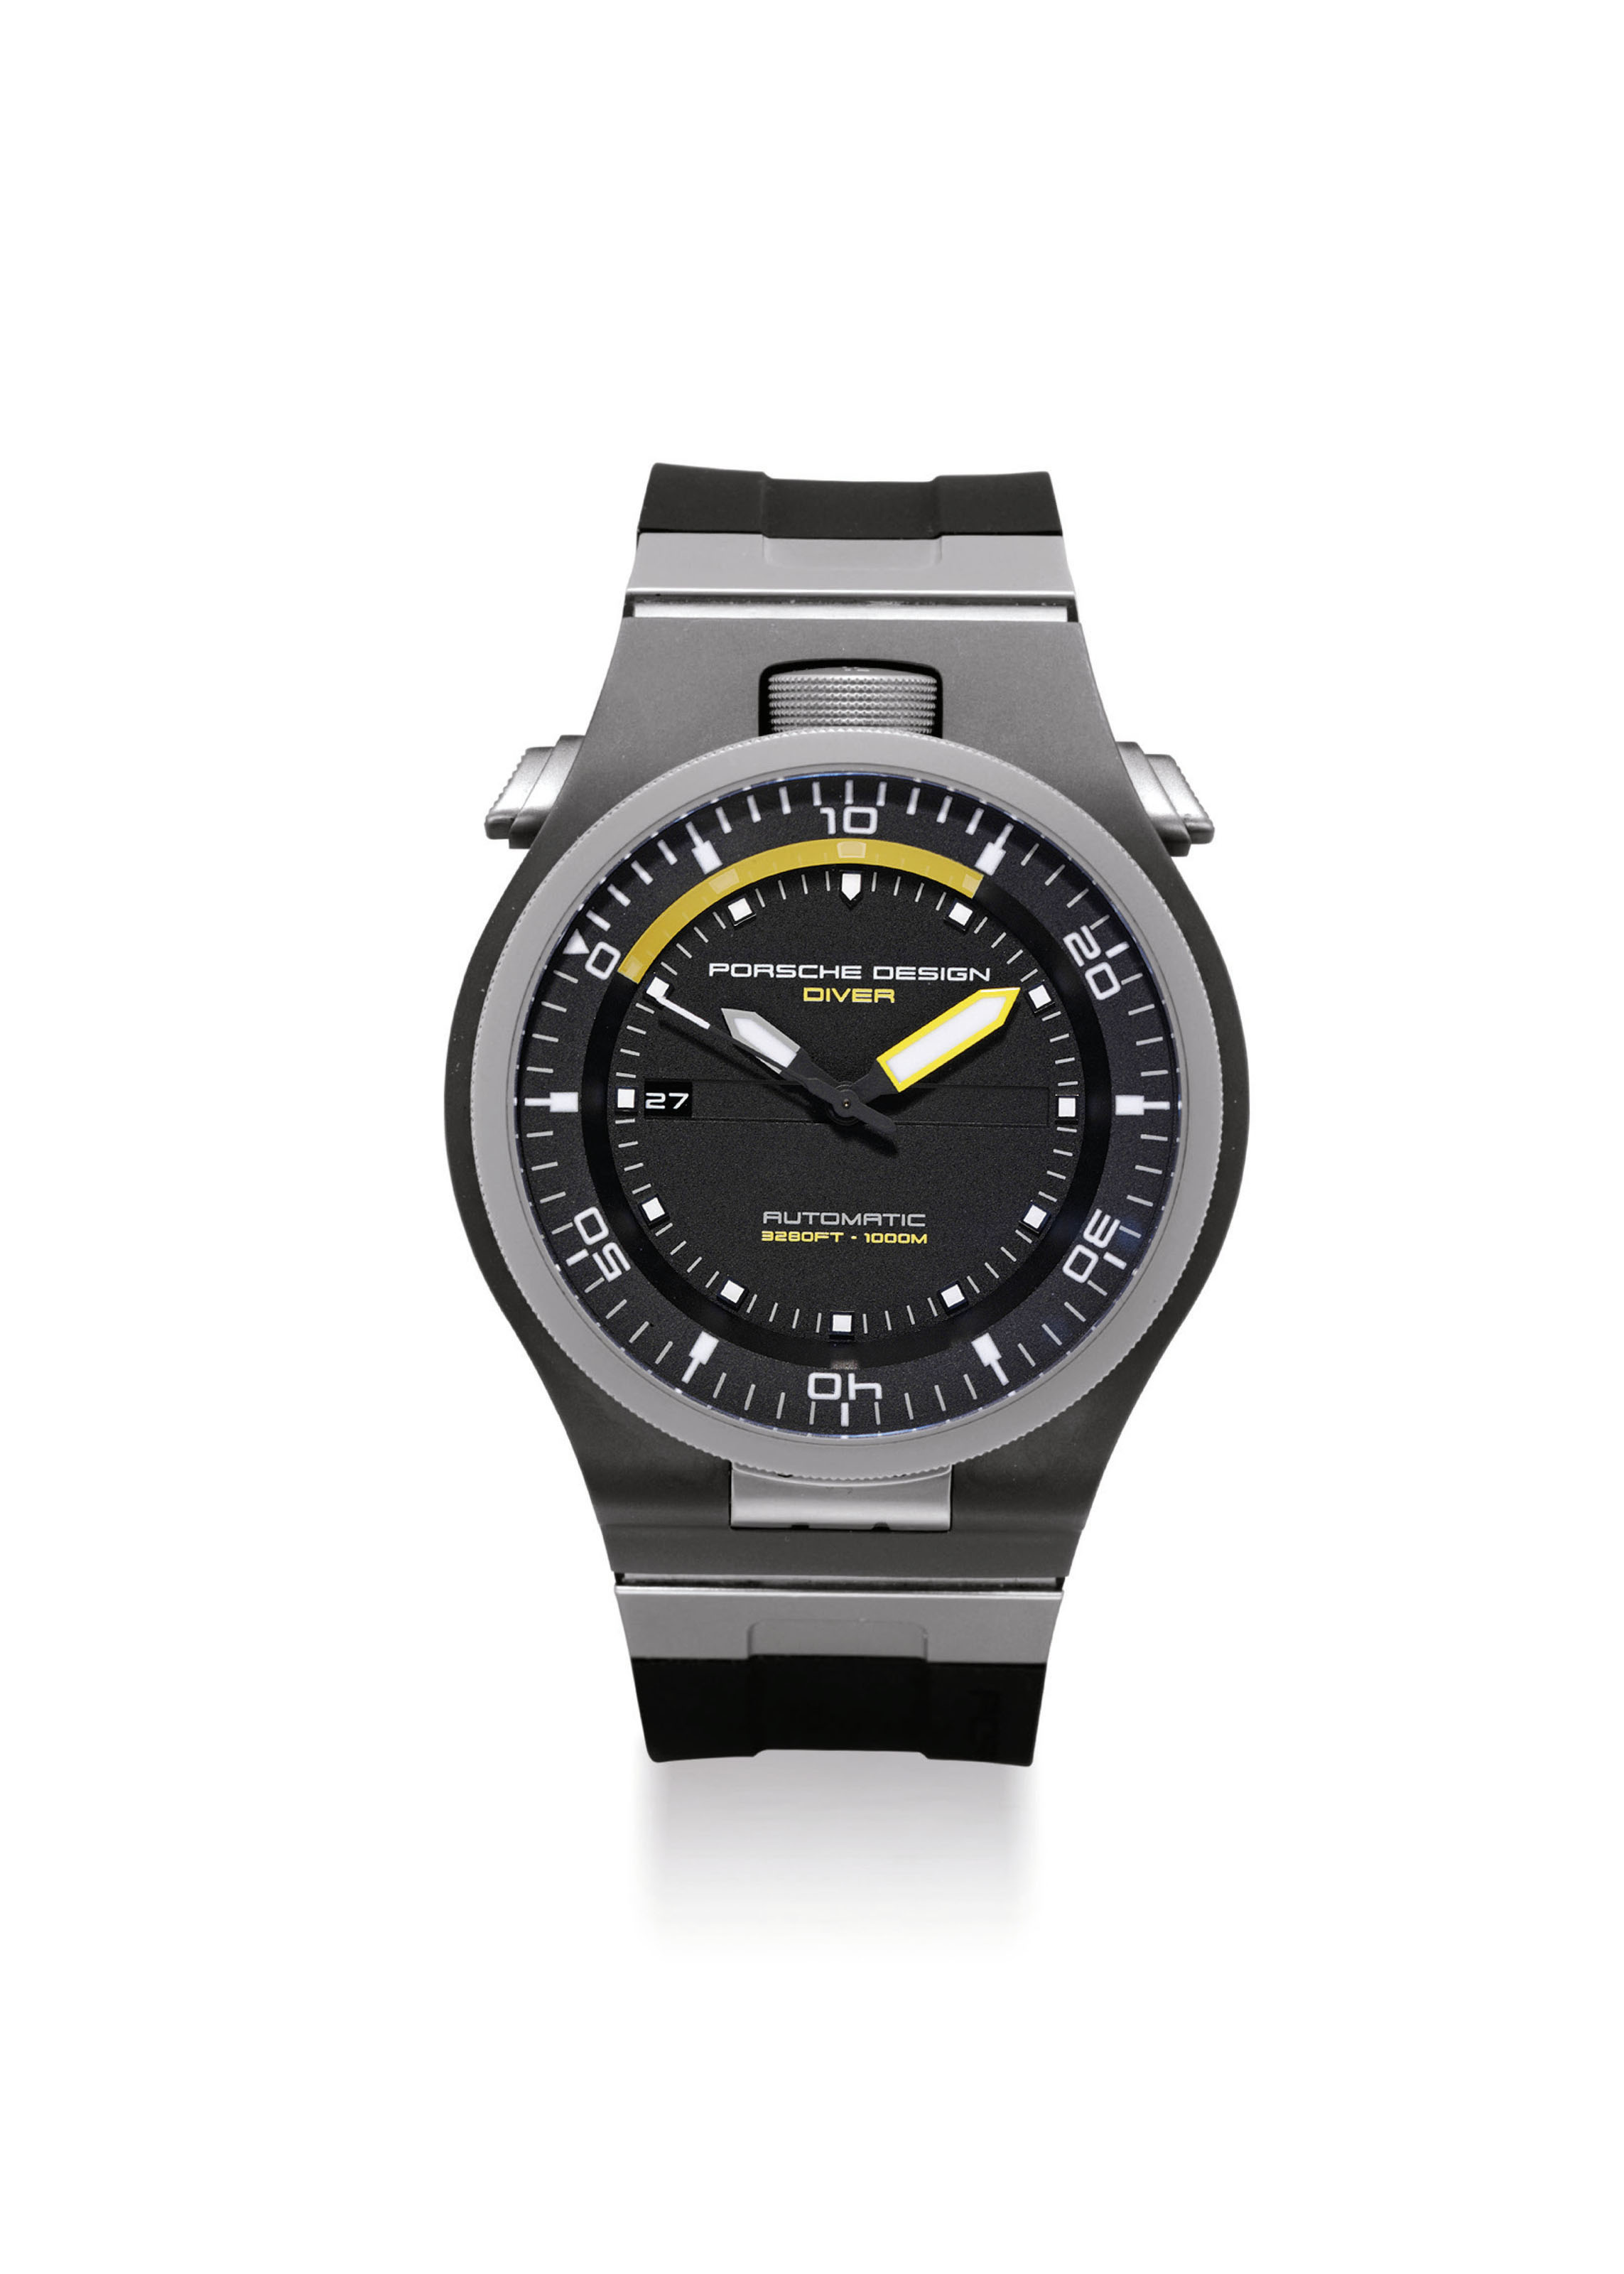 PORSCHE DESIGN. A STAINLESS STEEL AND TITANIUM AUTOMATIC DIVER'S WATCH WITH SWEEP CENTRE SECONDS AND DATE